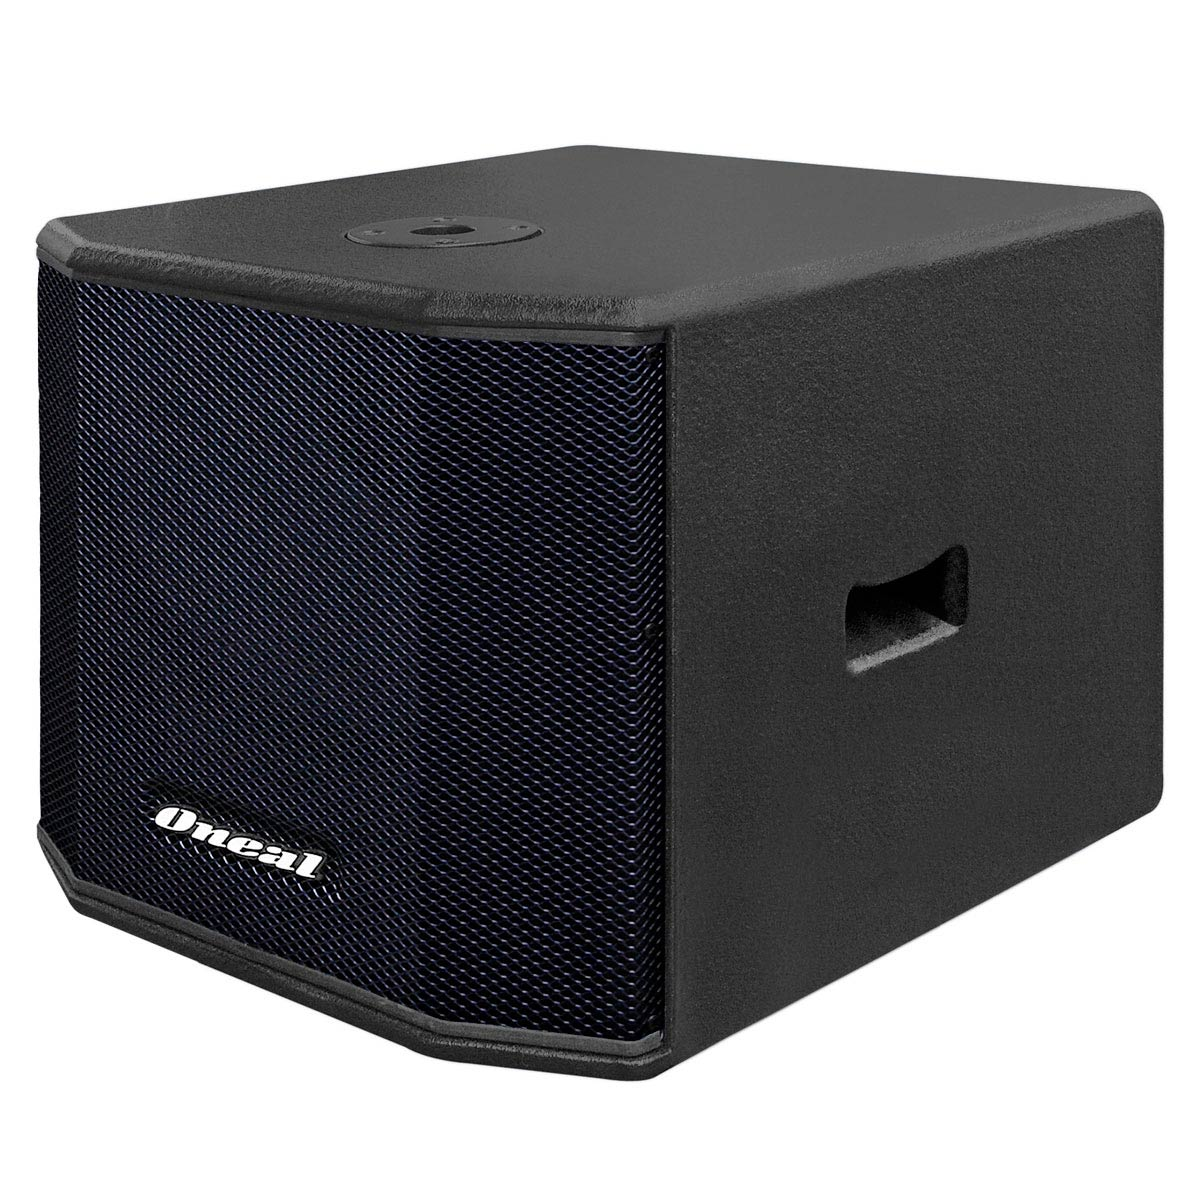 Subwoofer Passivo Fal 12 Pol 250W - OBSB 2200 Oneal